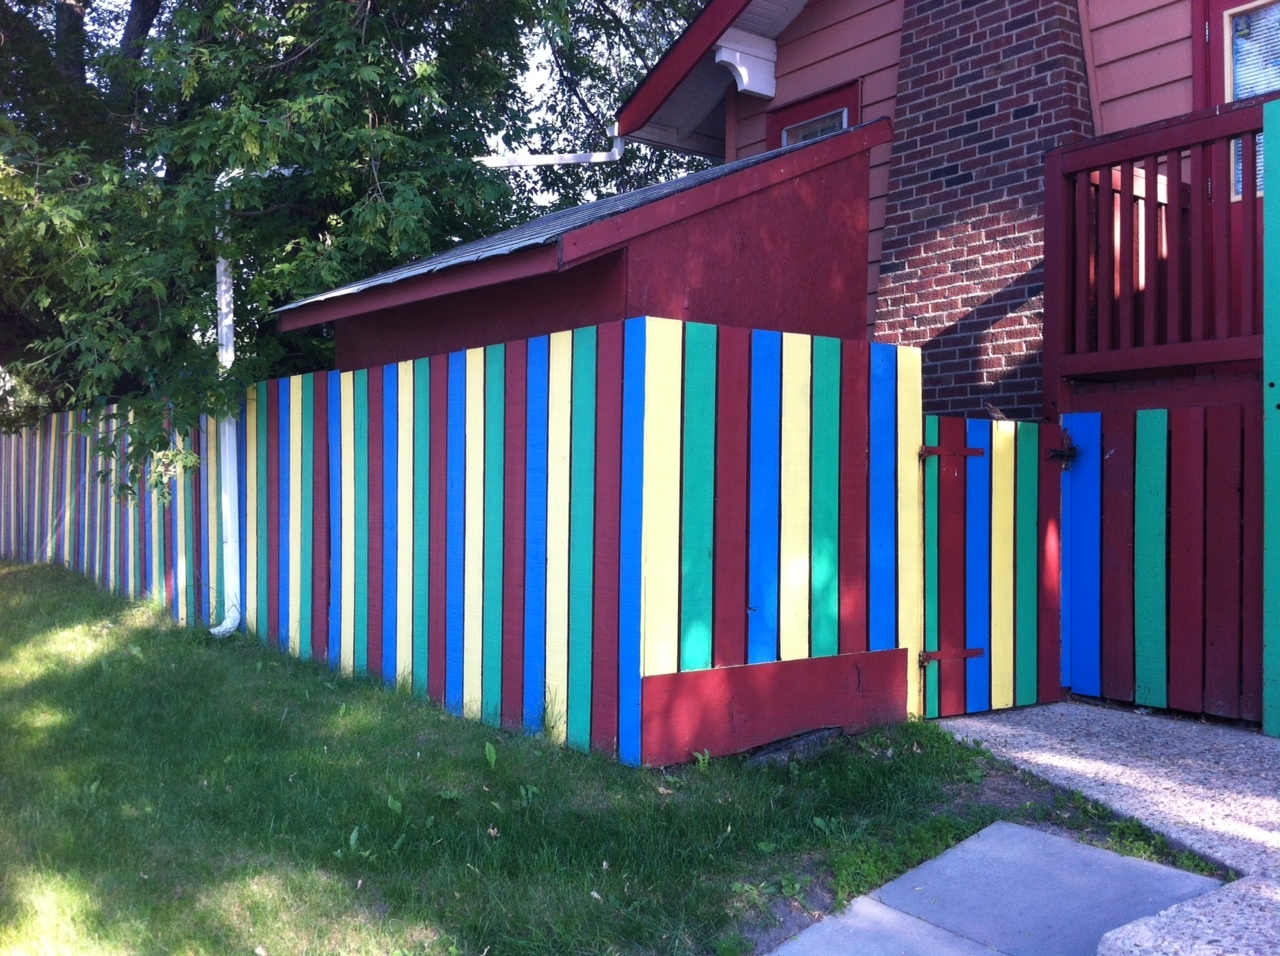 Every community needs a fun fence, they are most often found at daycares like this one. Note to self:  do a photo essay on fun fences.